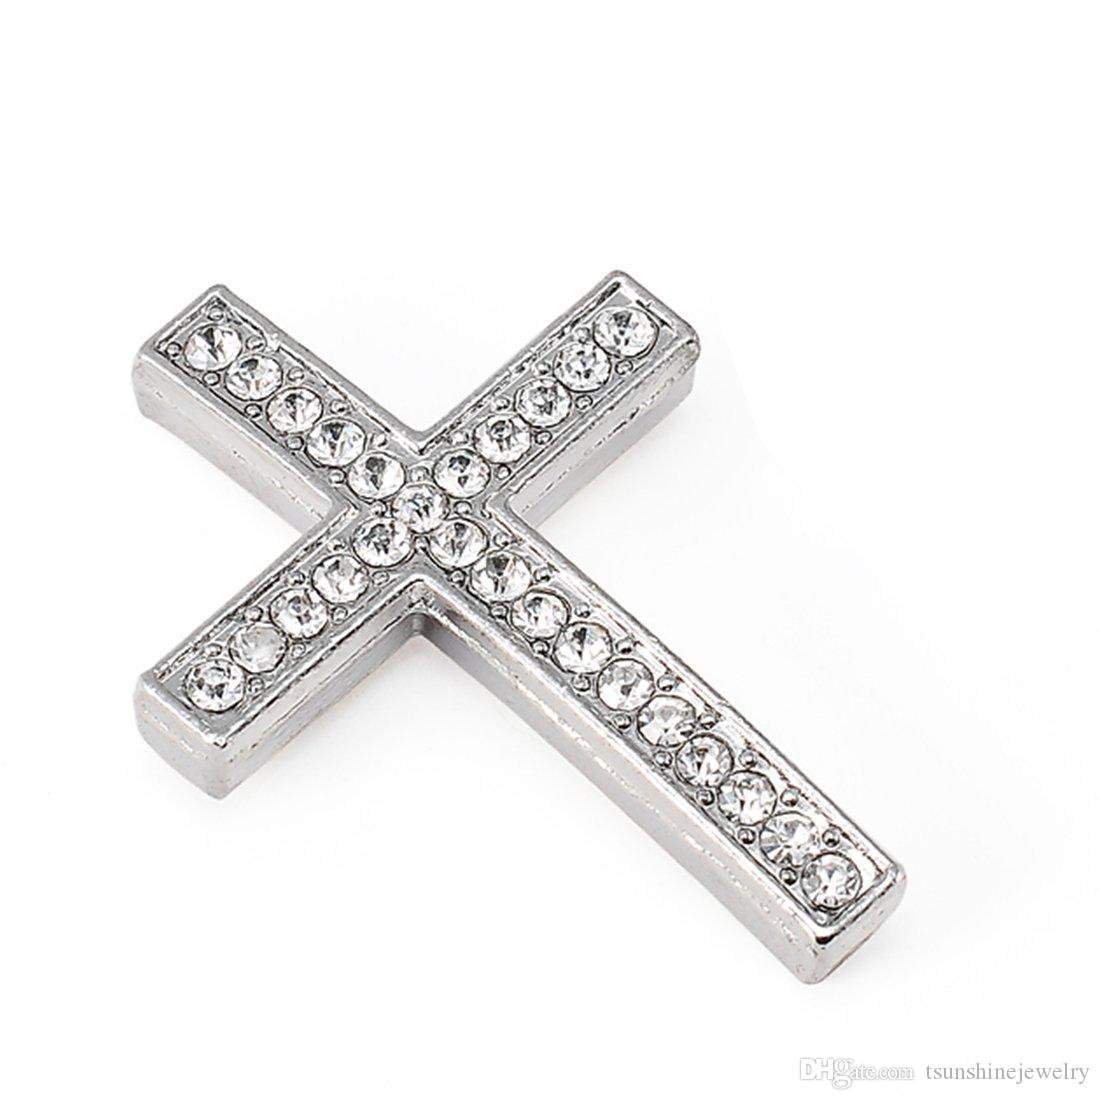 Cross Metal Connector Bead DIY Shamballa Bracelet Silver Color White Clear Crystal Inlay For Jewelry Making